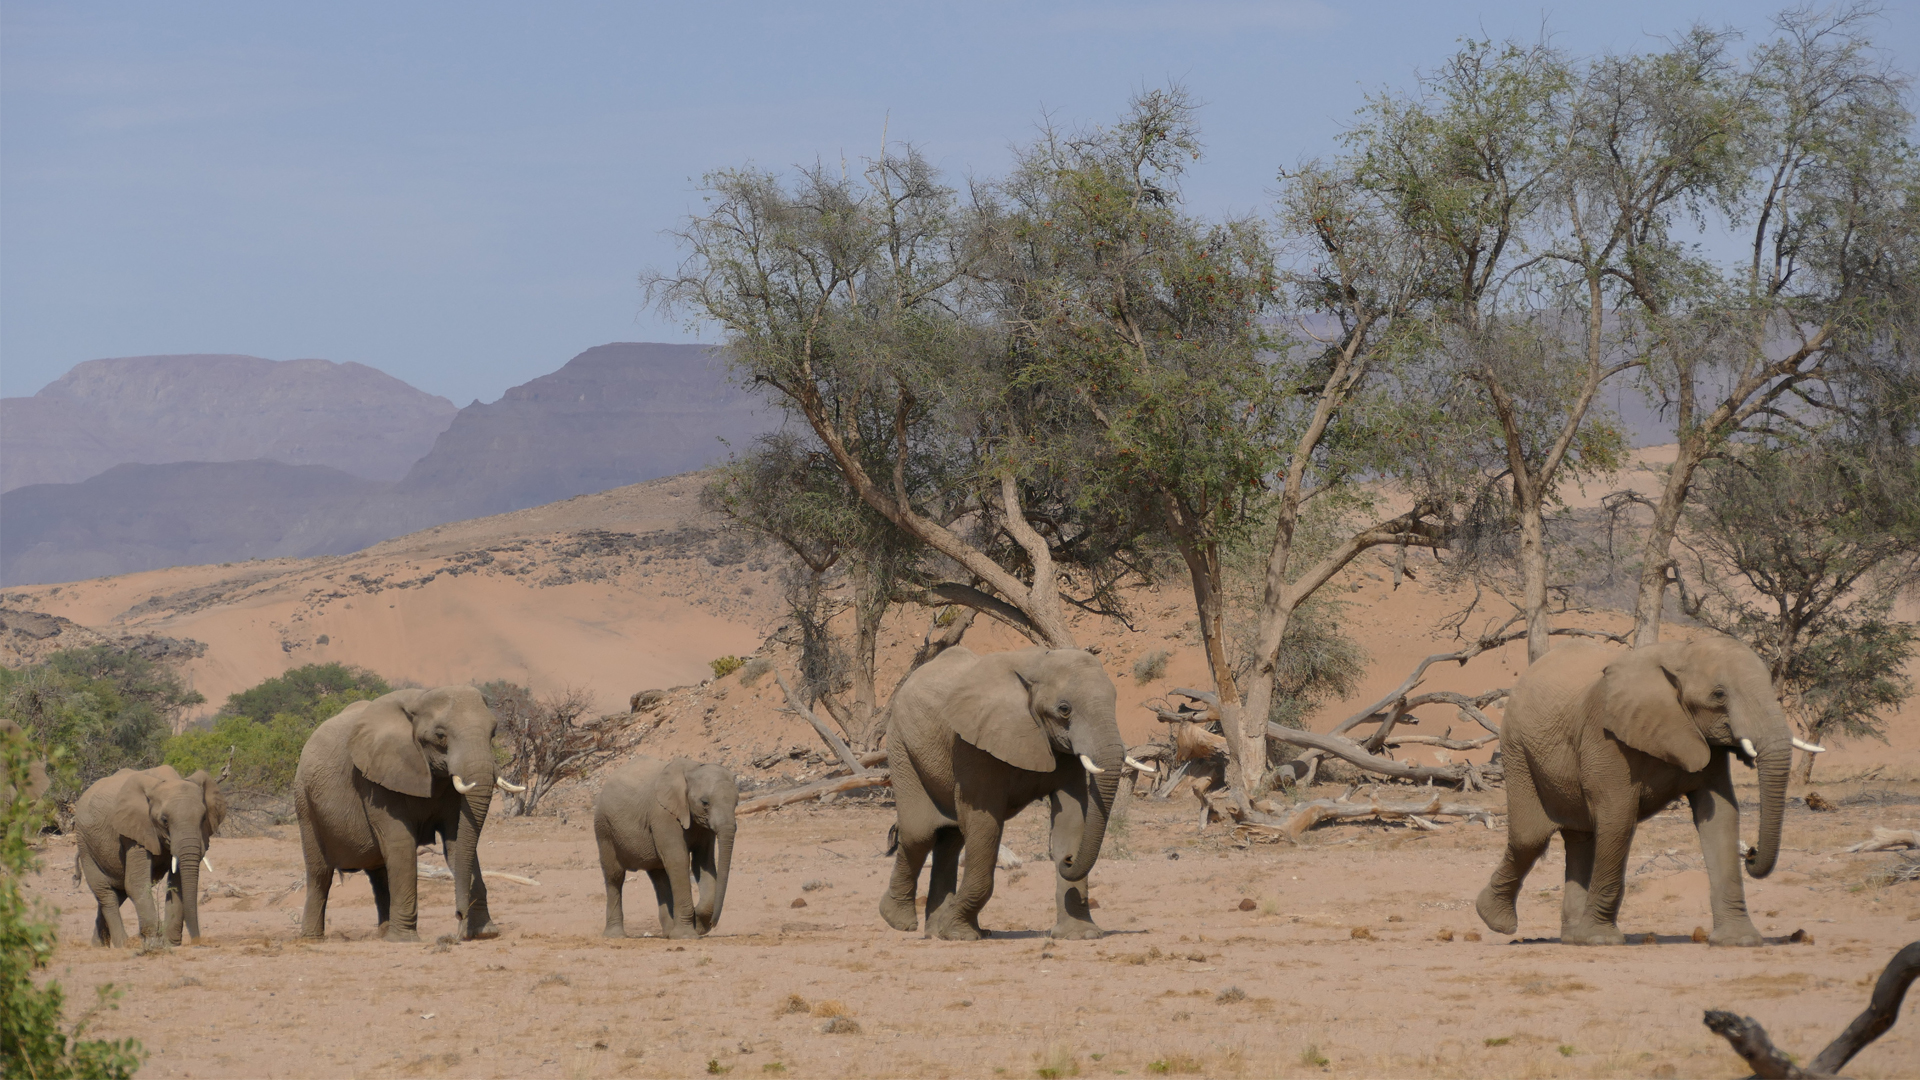 namibia wildlife highlights header desert elephants